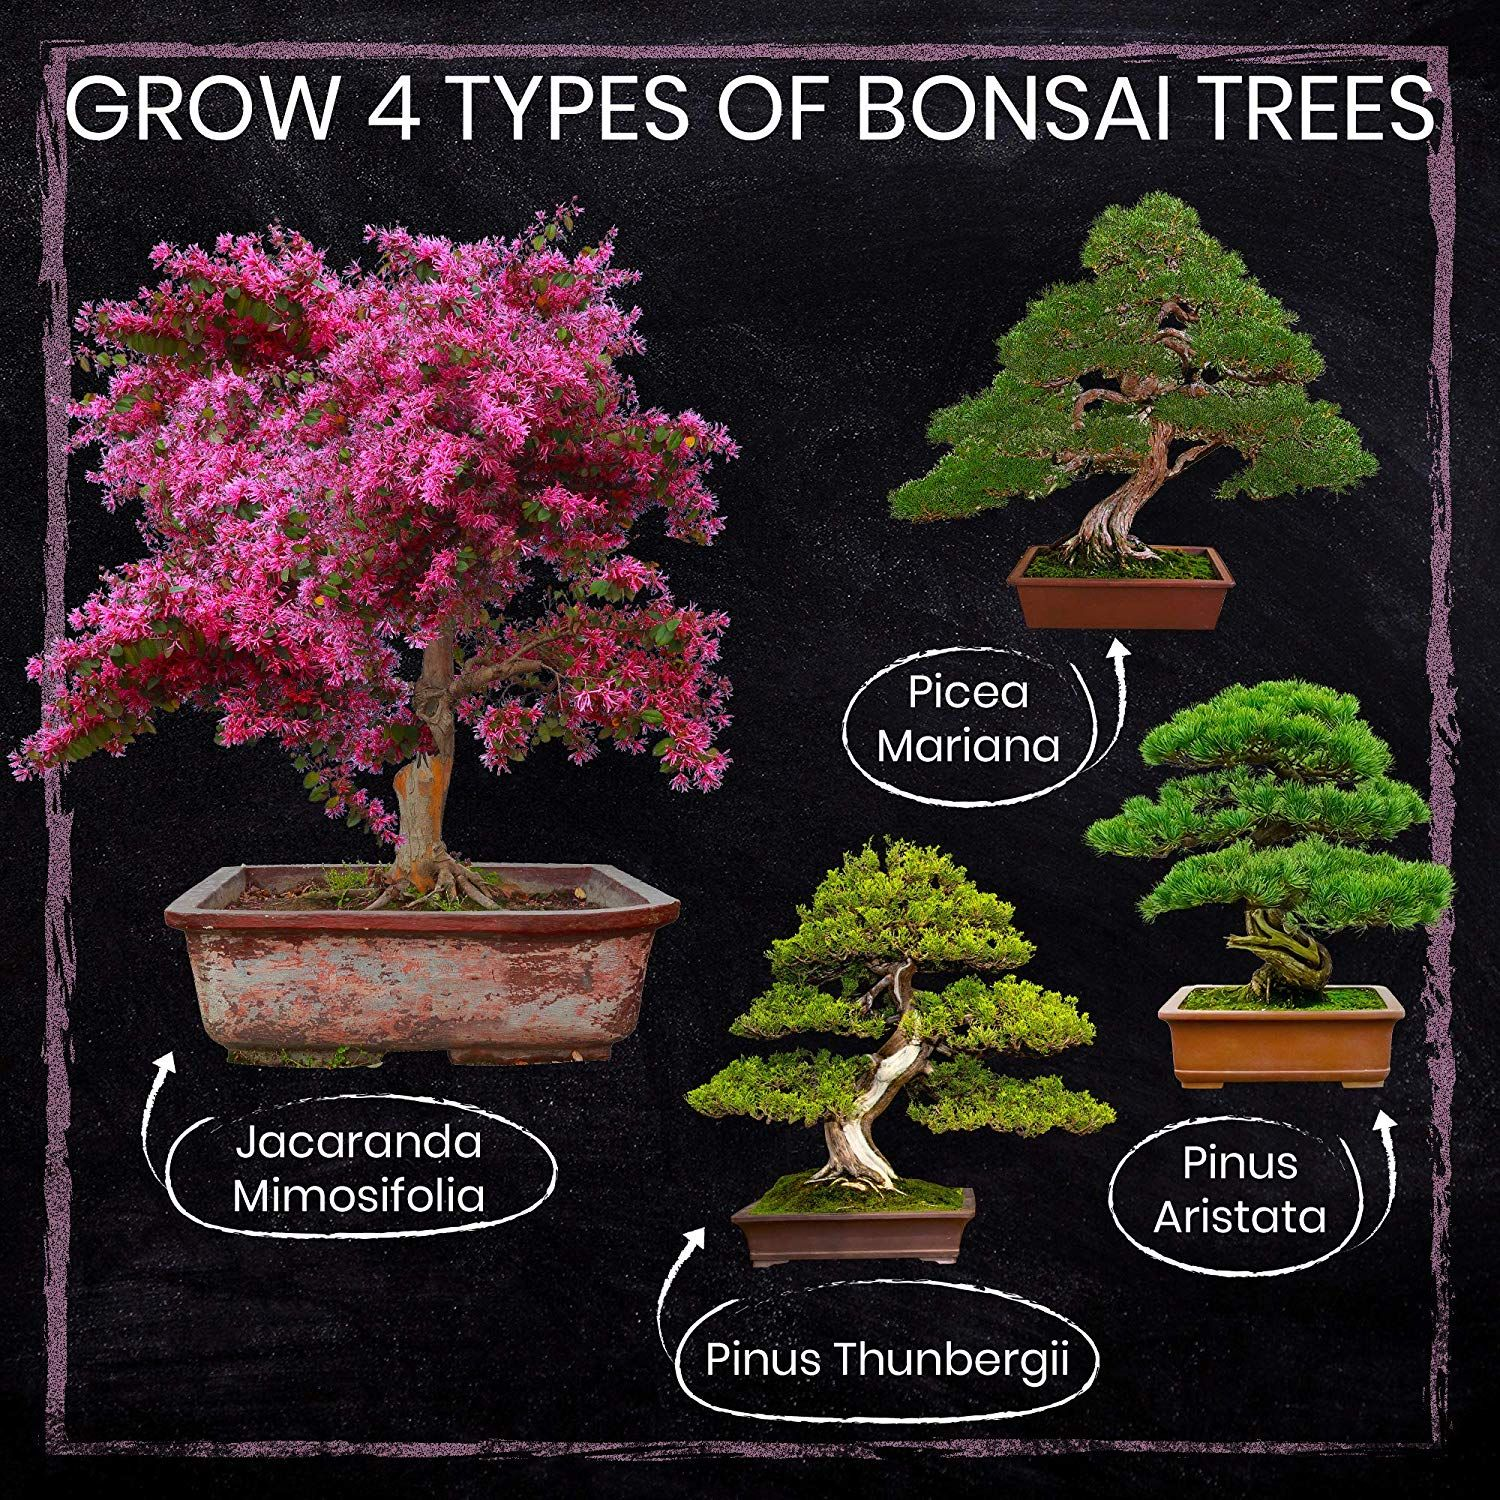 Amazon Com Nature S Blossom Bonsai Tree Kit Grow 4 Types Of Bonsai Trees From Seed Indoor Outdoor Ga In 2020 Bonsai Tree Types Bonsai Tree Bonsai Trees For Sale